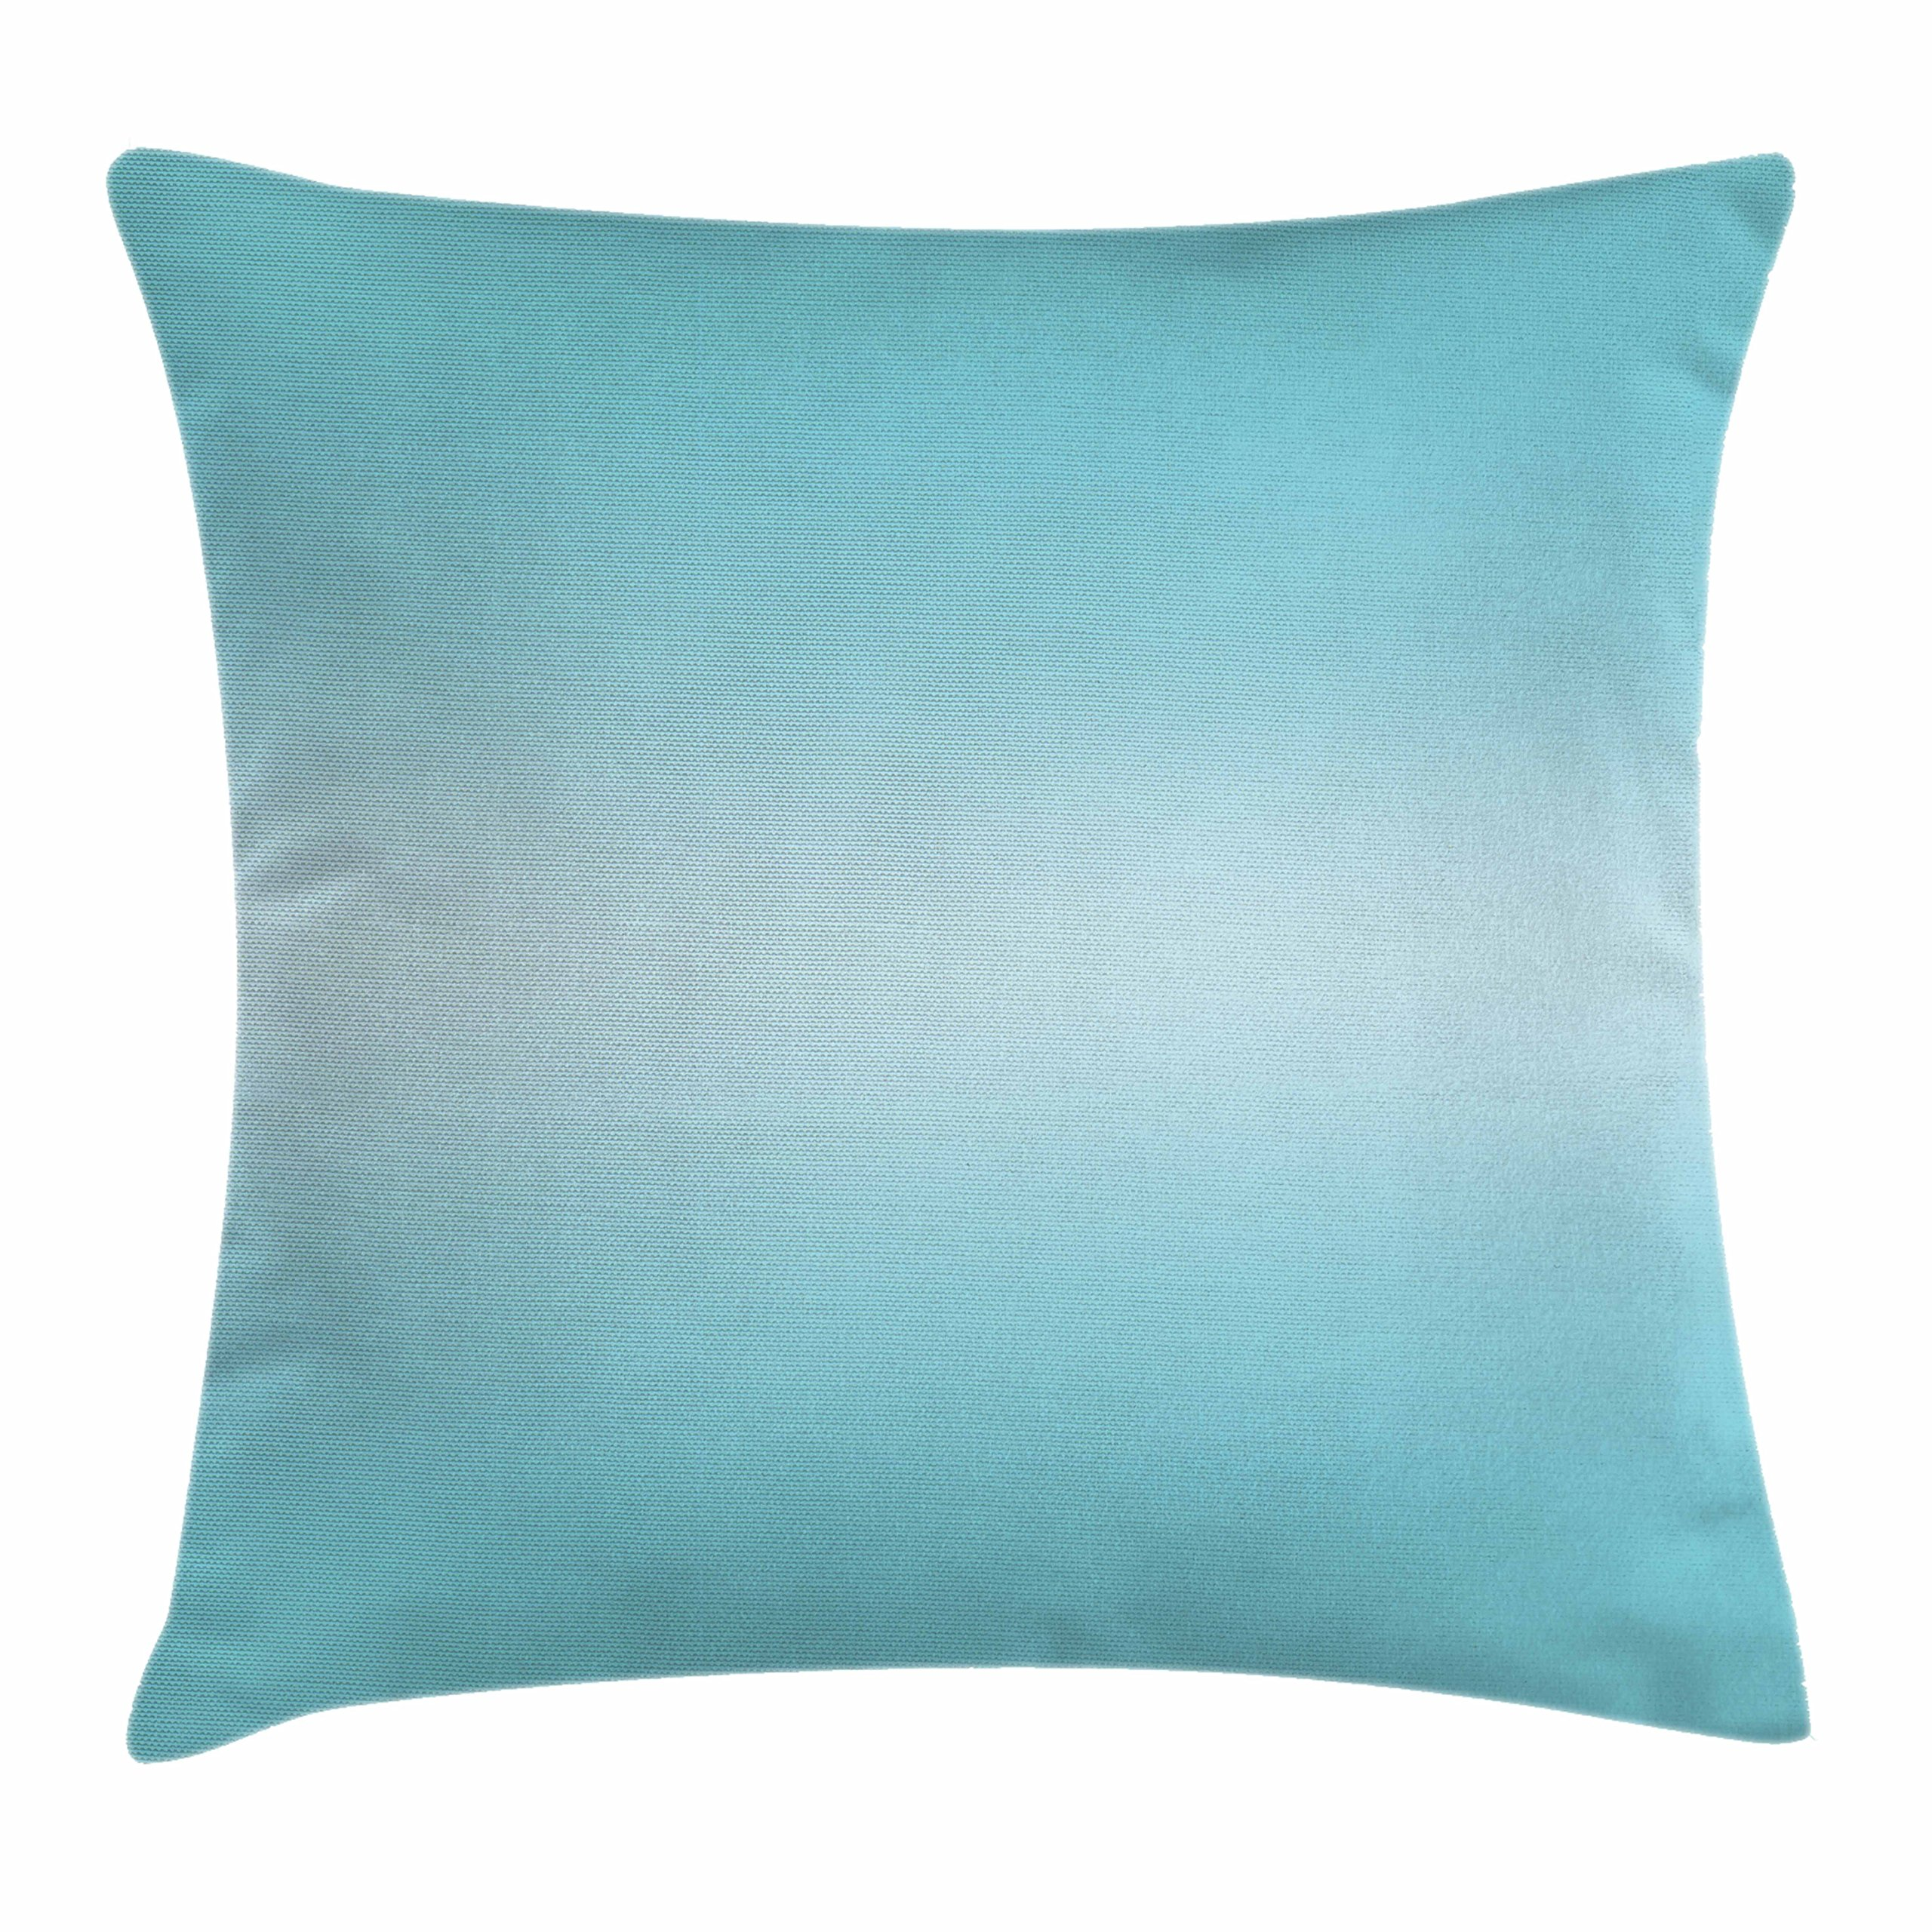 Ambesonne Ombre Throw Pillow Cushion Cover, Open Blue Sky on a Spring Day Inspired Blue Colored Modern Design Room Decorations, Decorative Square Accent Pillow Case, 16 X 16 Inches, Turquoise